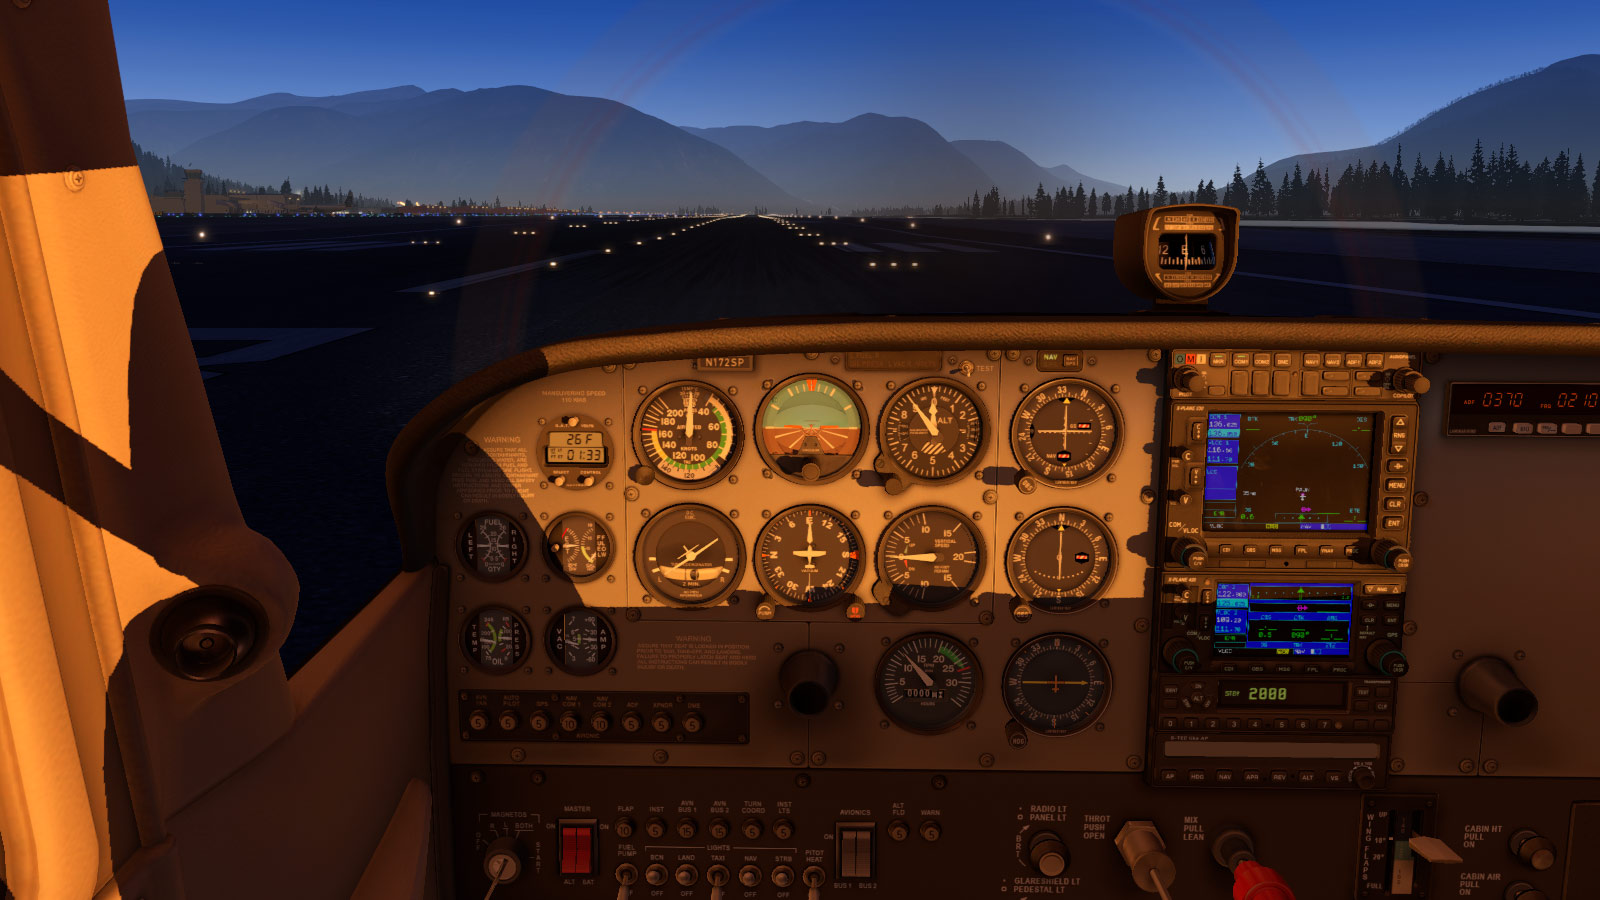 Simulator Modifications : Project BetterSky - X-Plane Plugins and